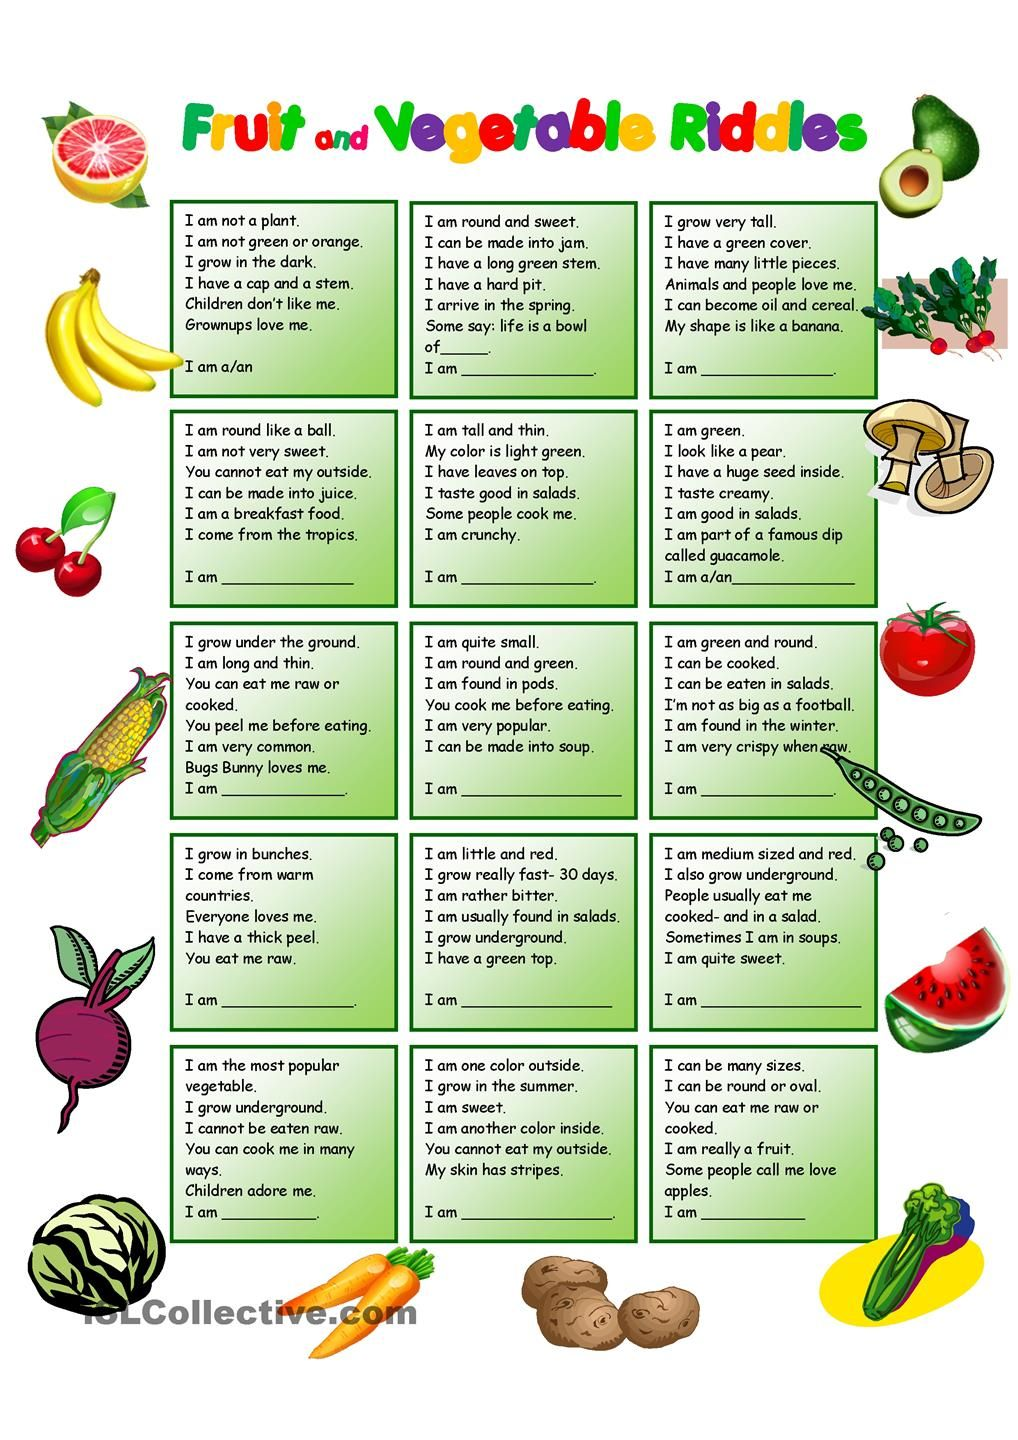 Fruit and Vegetables Riddles with KEY ADARGELIS